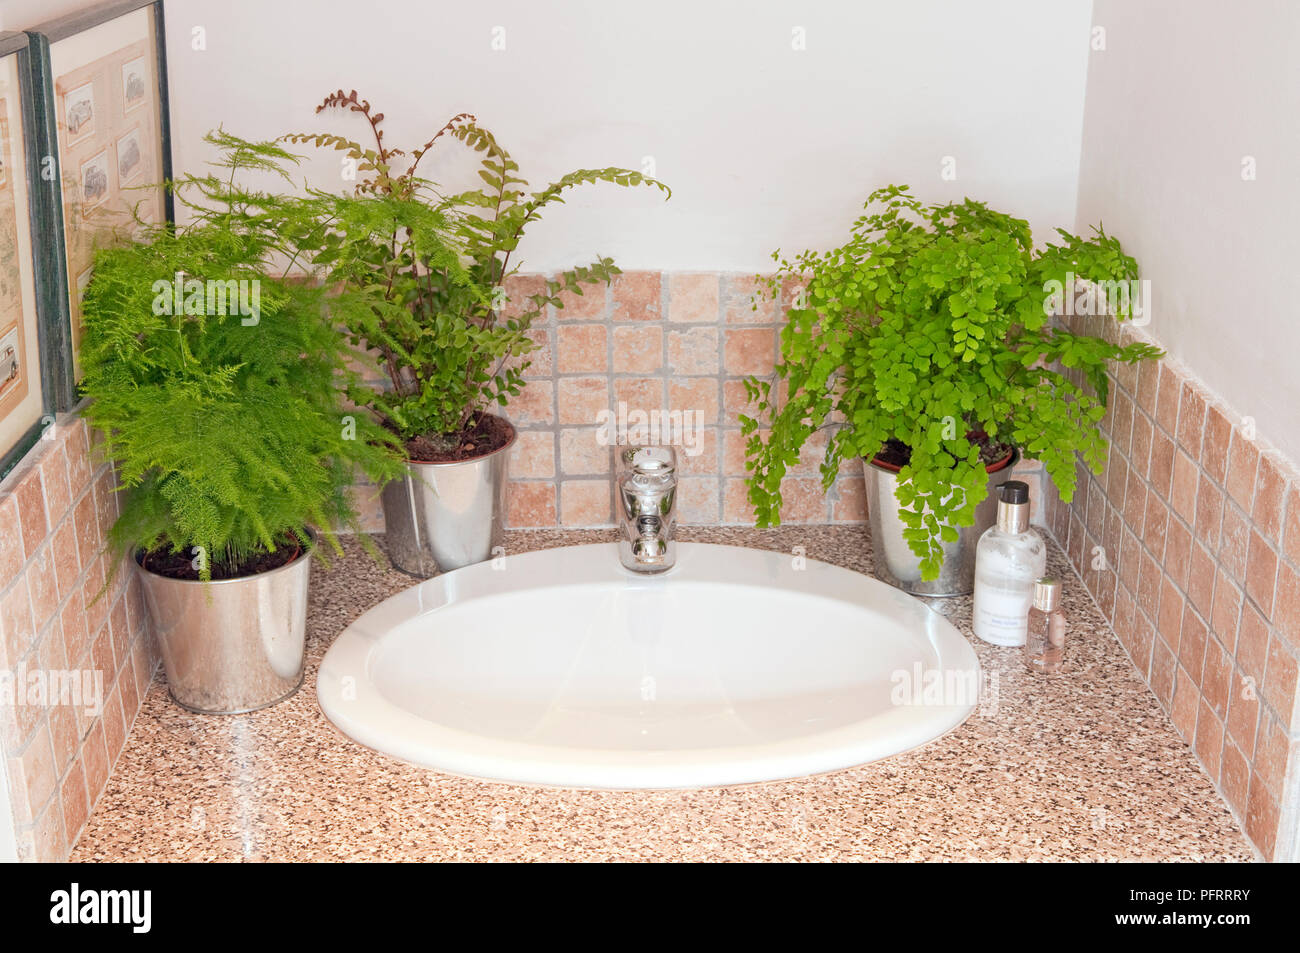 Maidenhair Fern Pot Photos Maidenhair Fern Pot Images Alamy